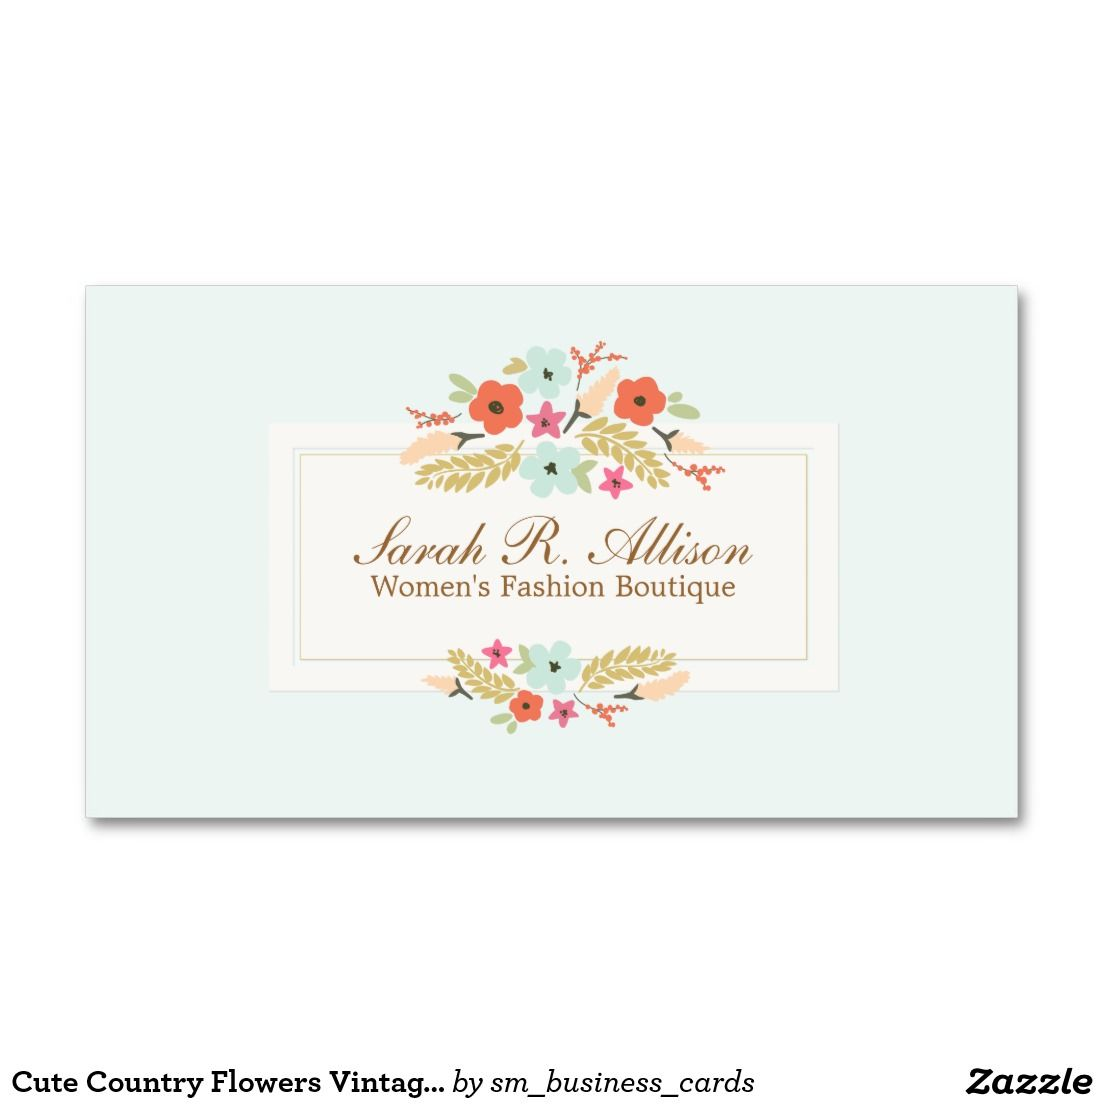 Cute Country Flowers Vintage Floral Boutique Business Card ...